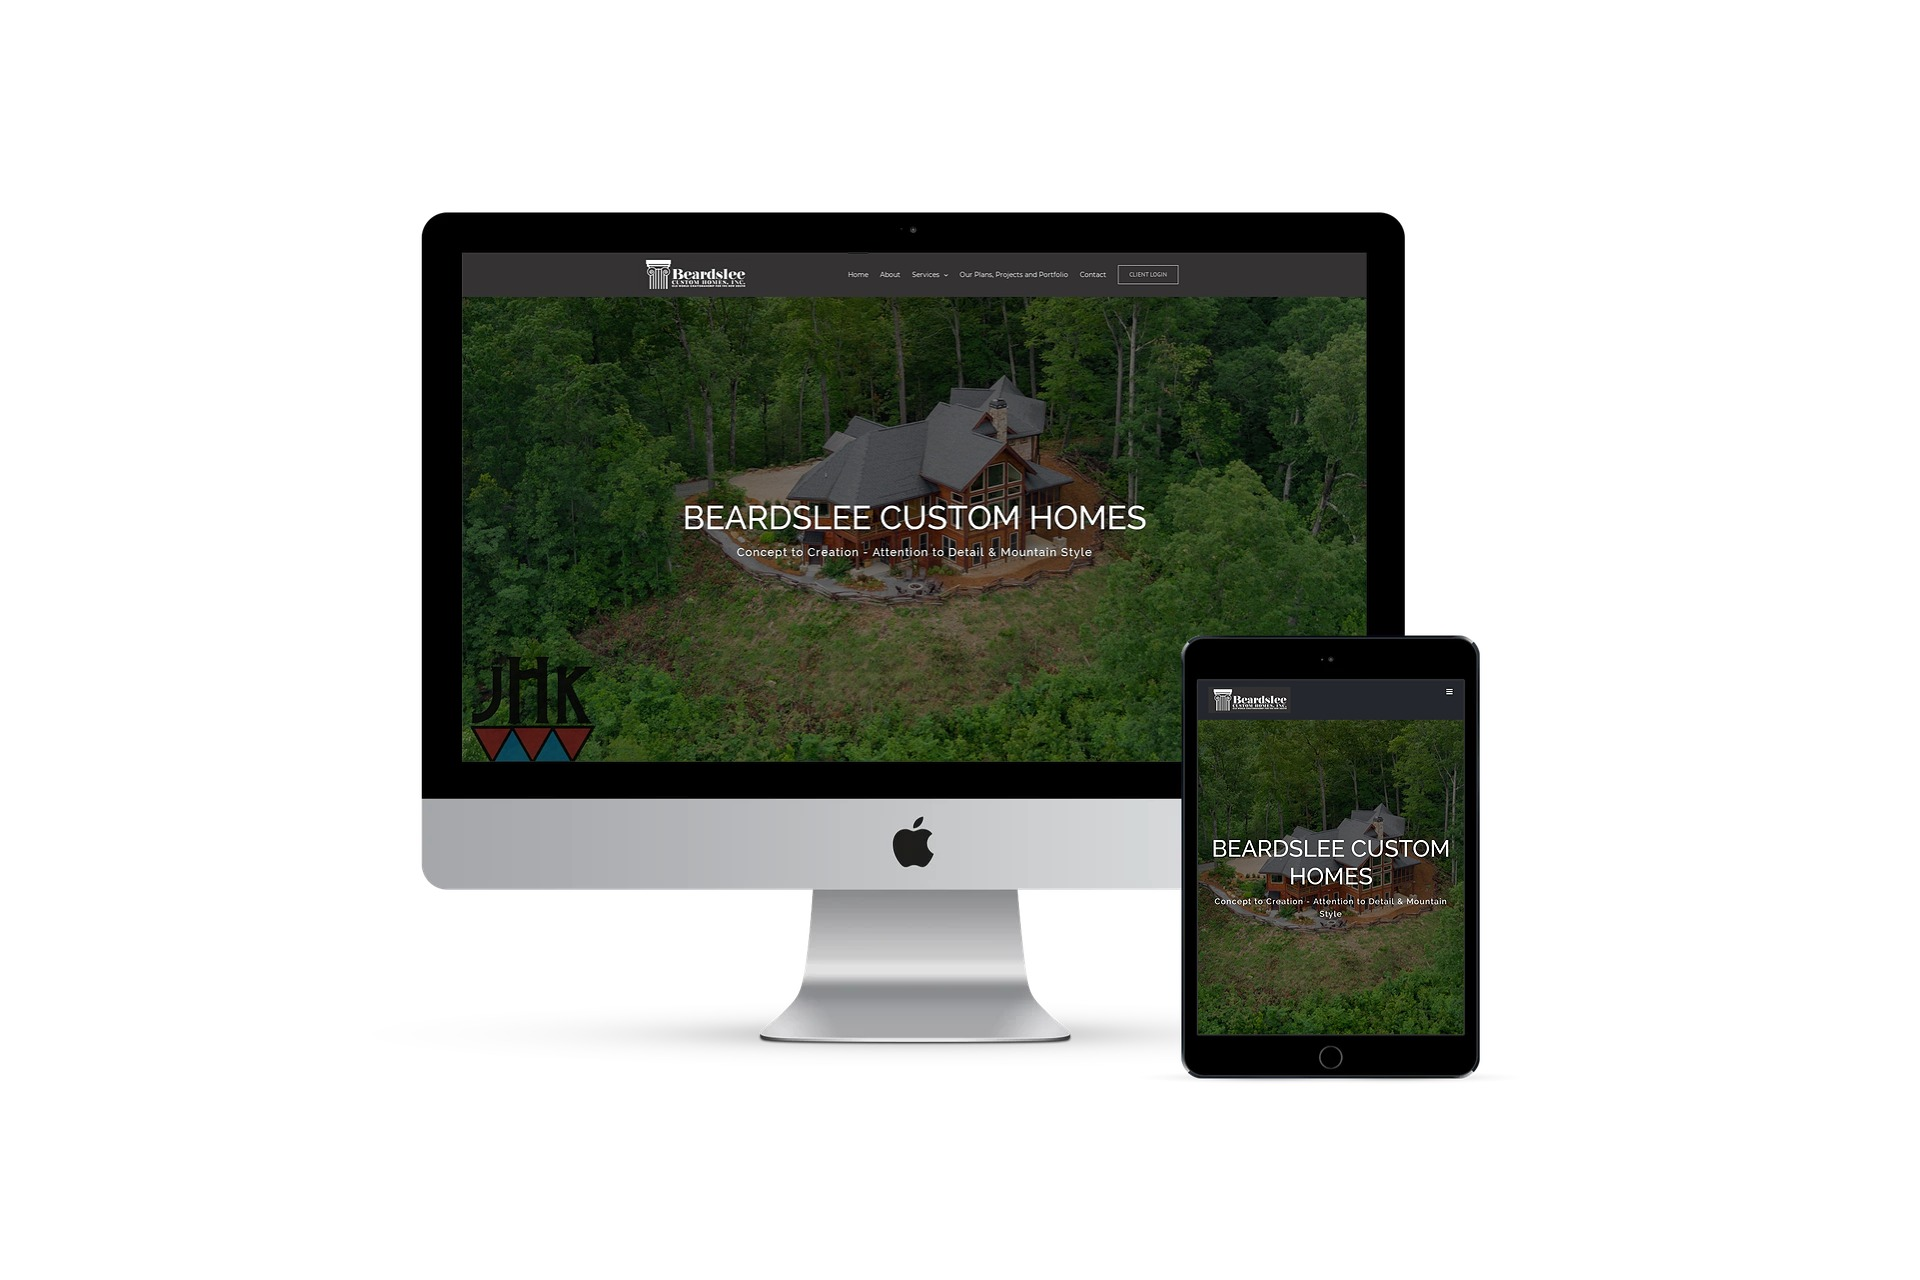 Beard Lee custom homes - - home page on multiple screen